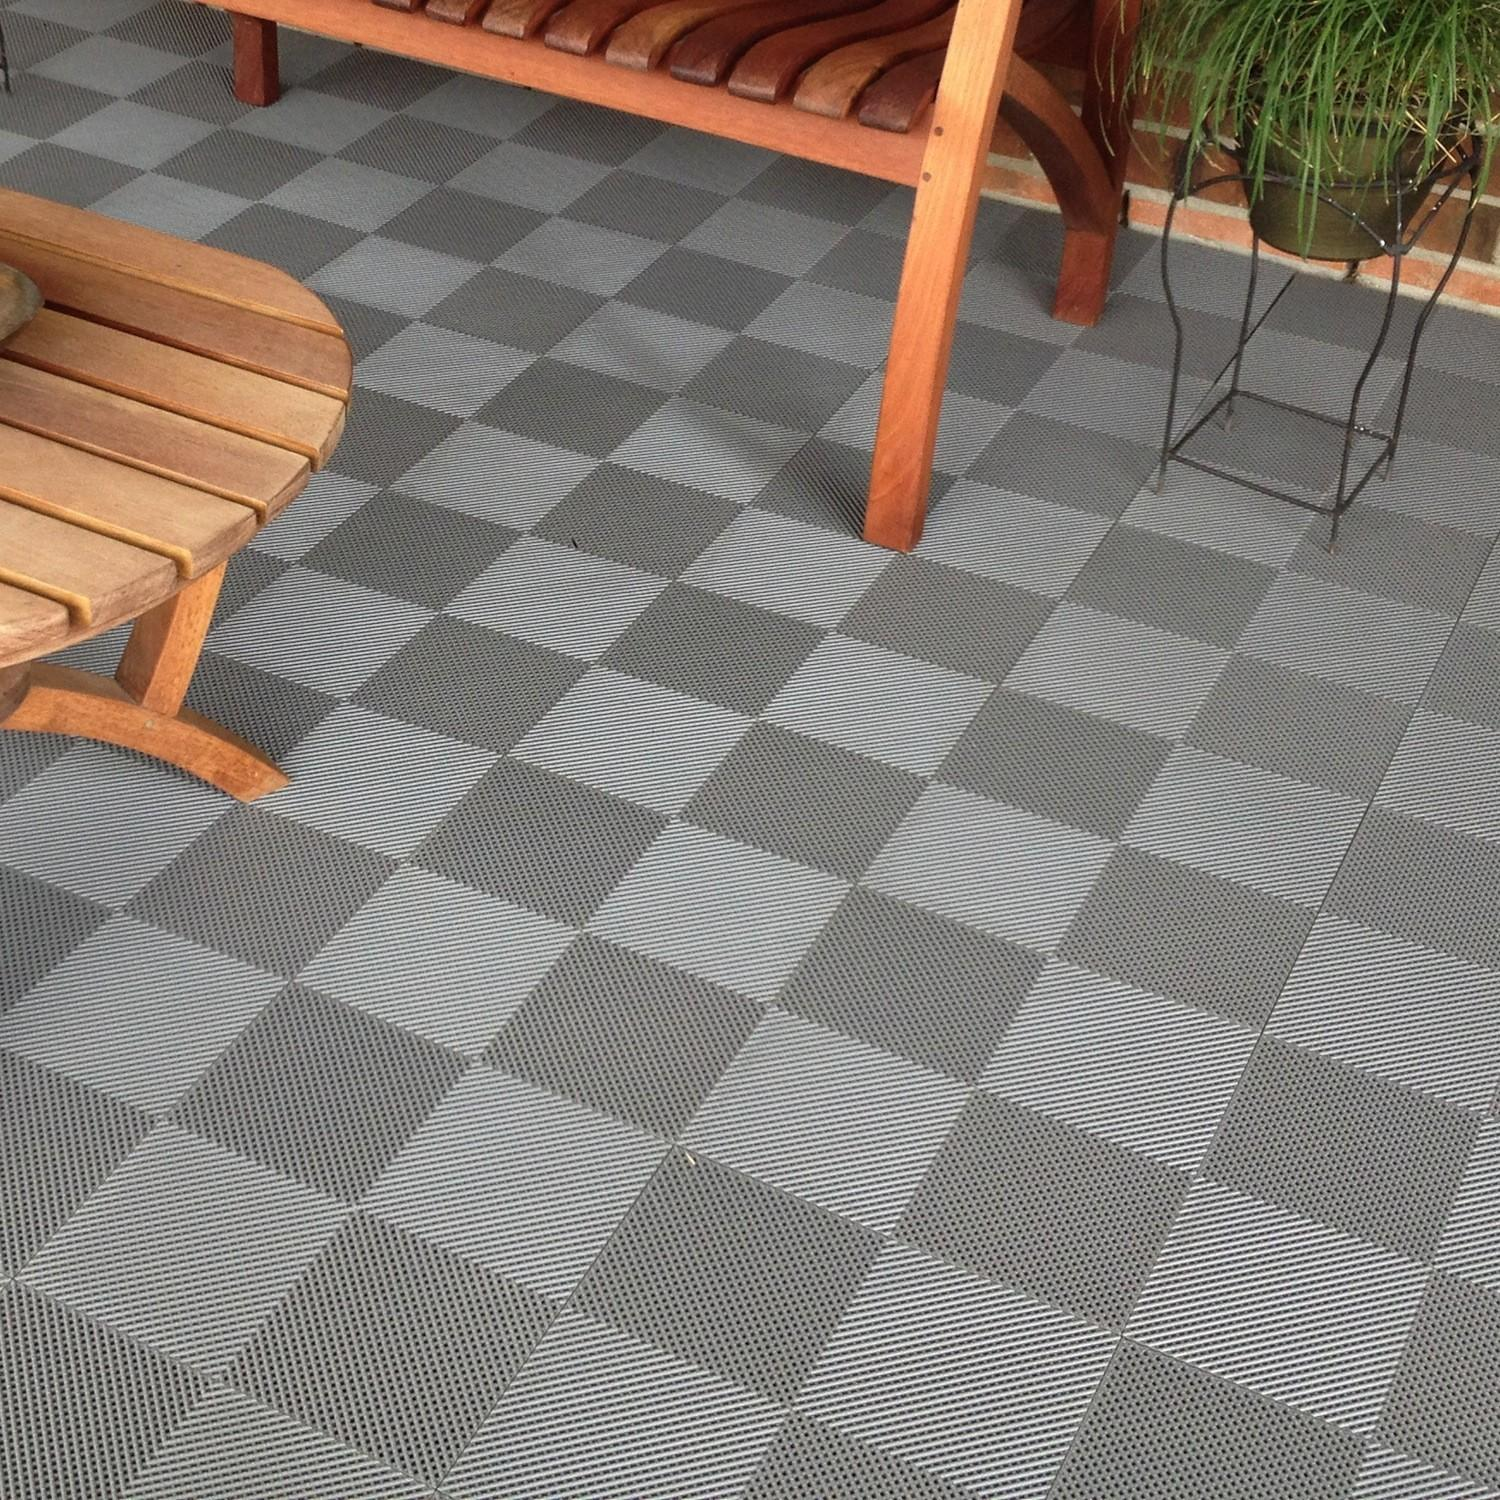 Personable Small Backyard Ideas Bright Tiles Cozy